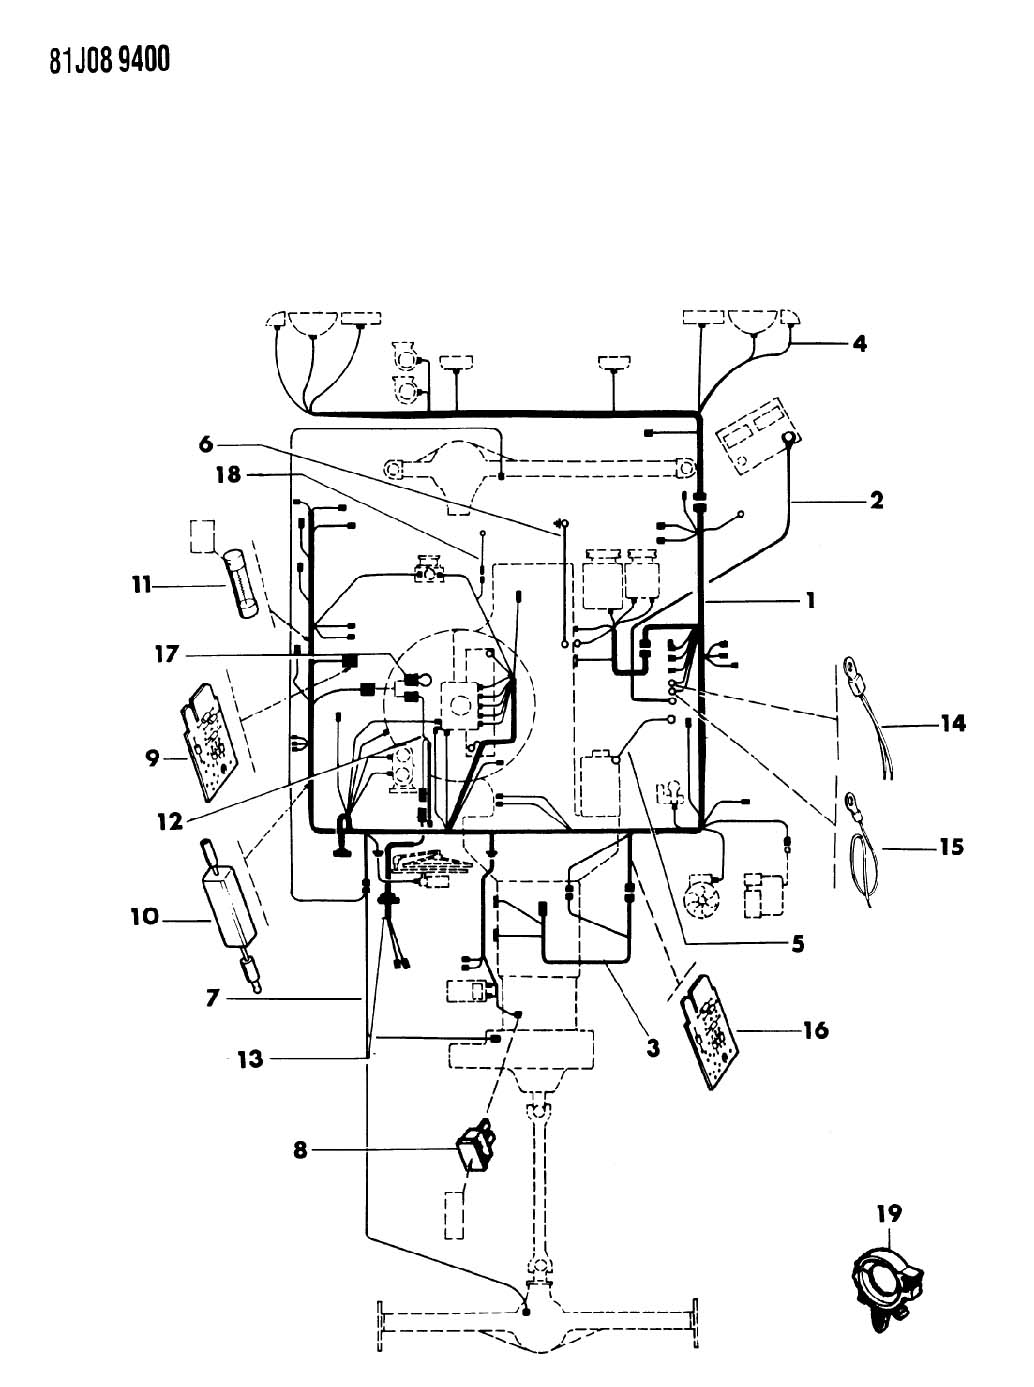 Ford Pin Trailer Wiring Diagram Autocurate Net F Gmc For